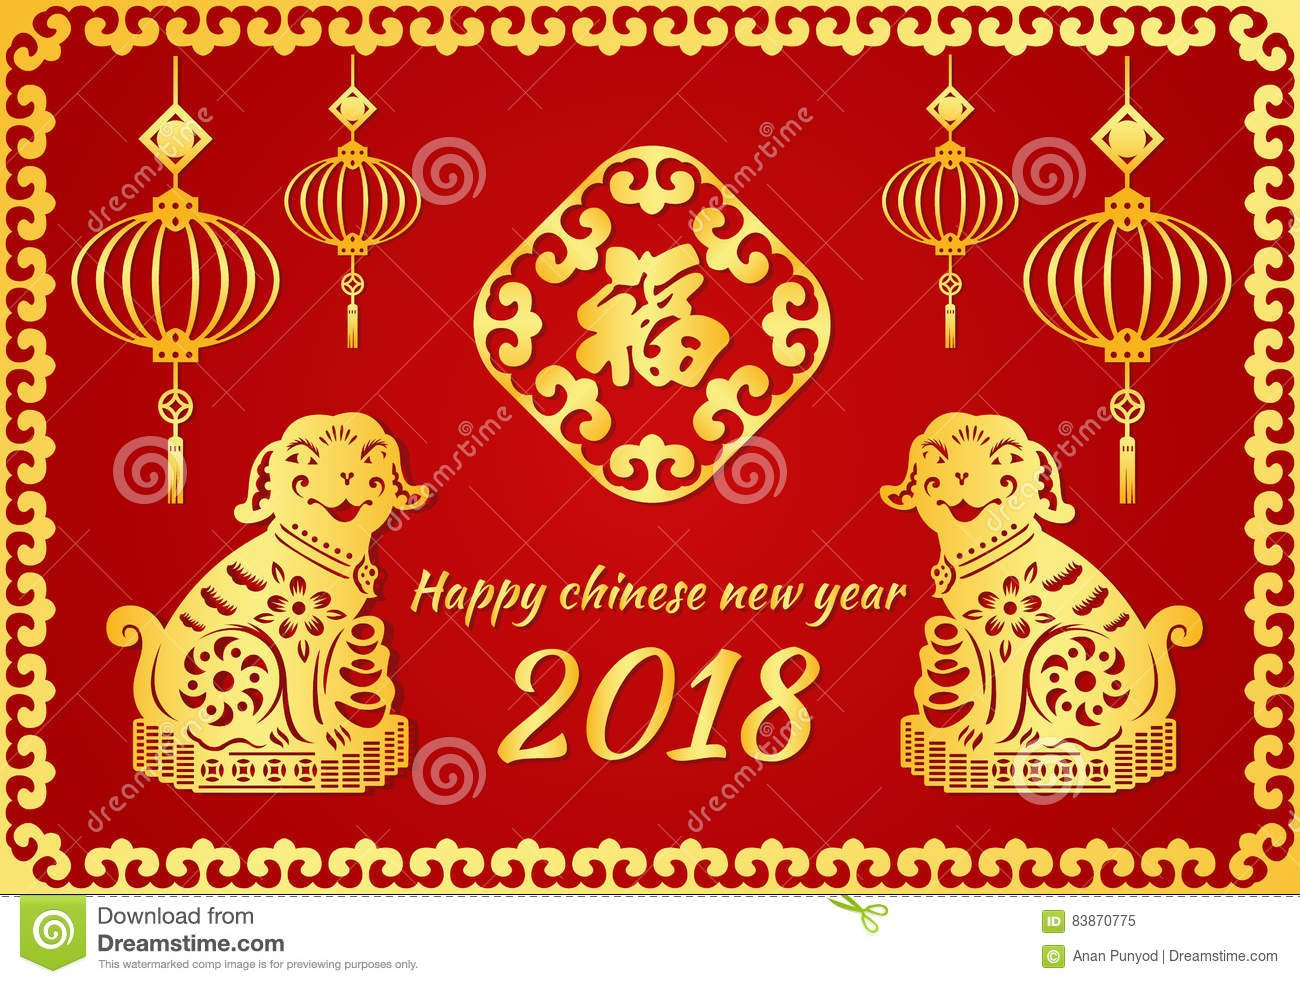 wallpaper chinese new year 2018 Merry Christmas Happy 1300x984